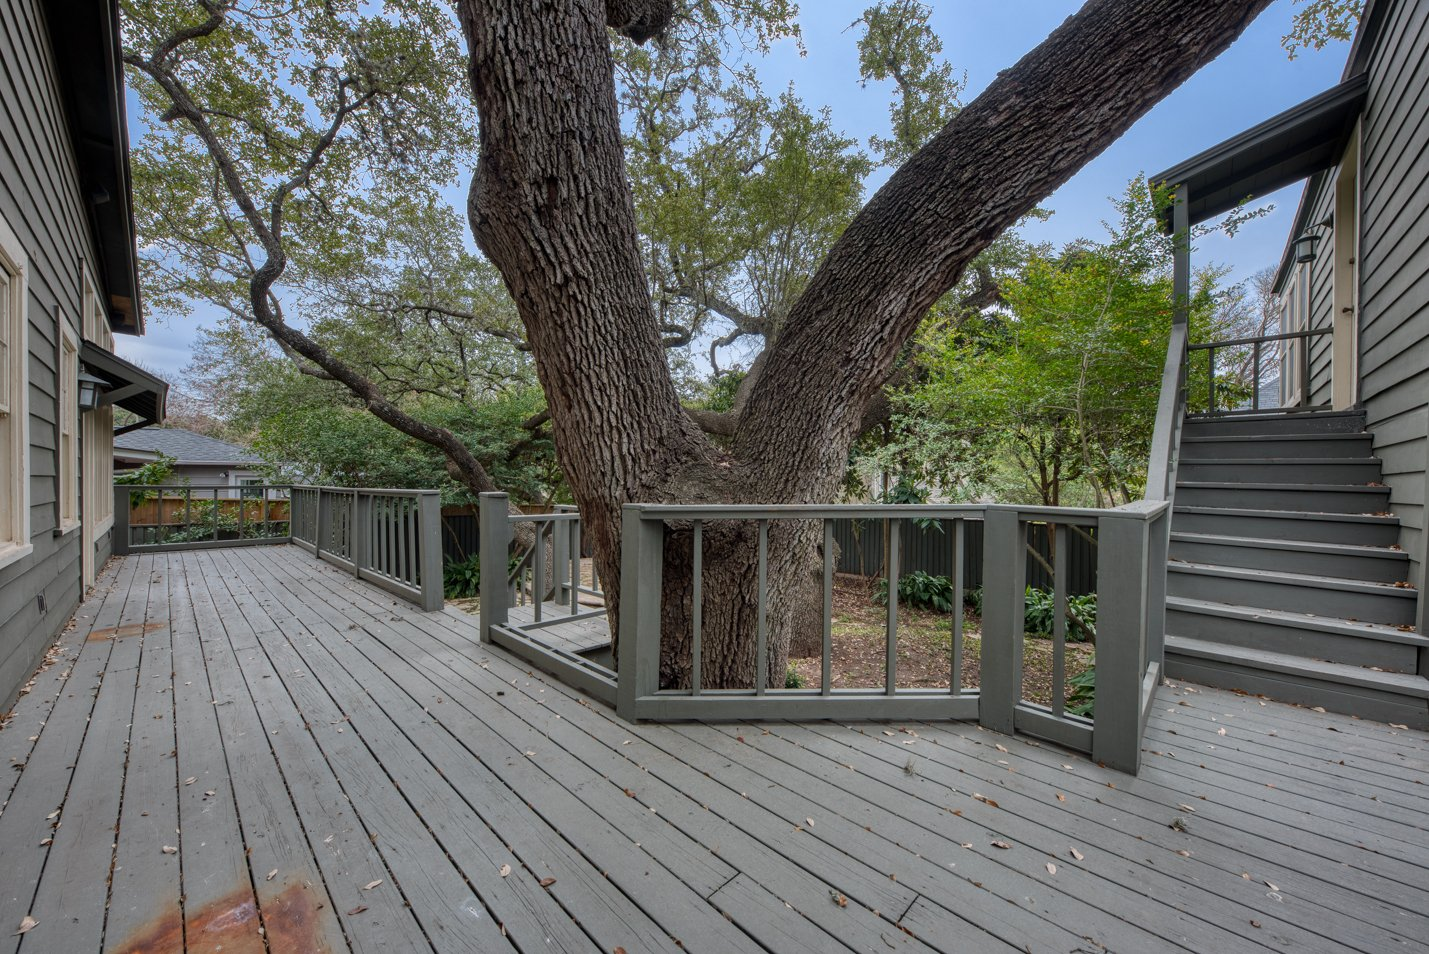 430 Evans Ave – Alamo Heights